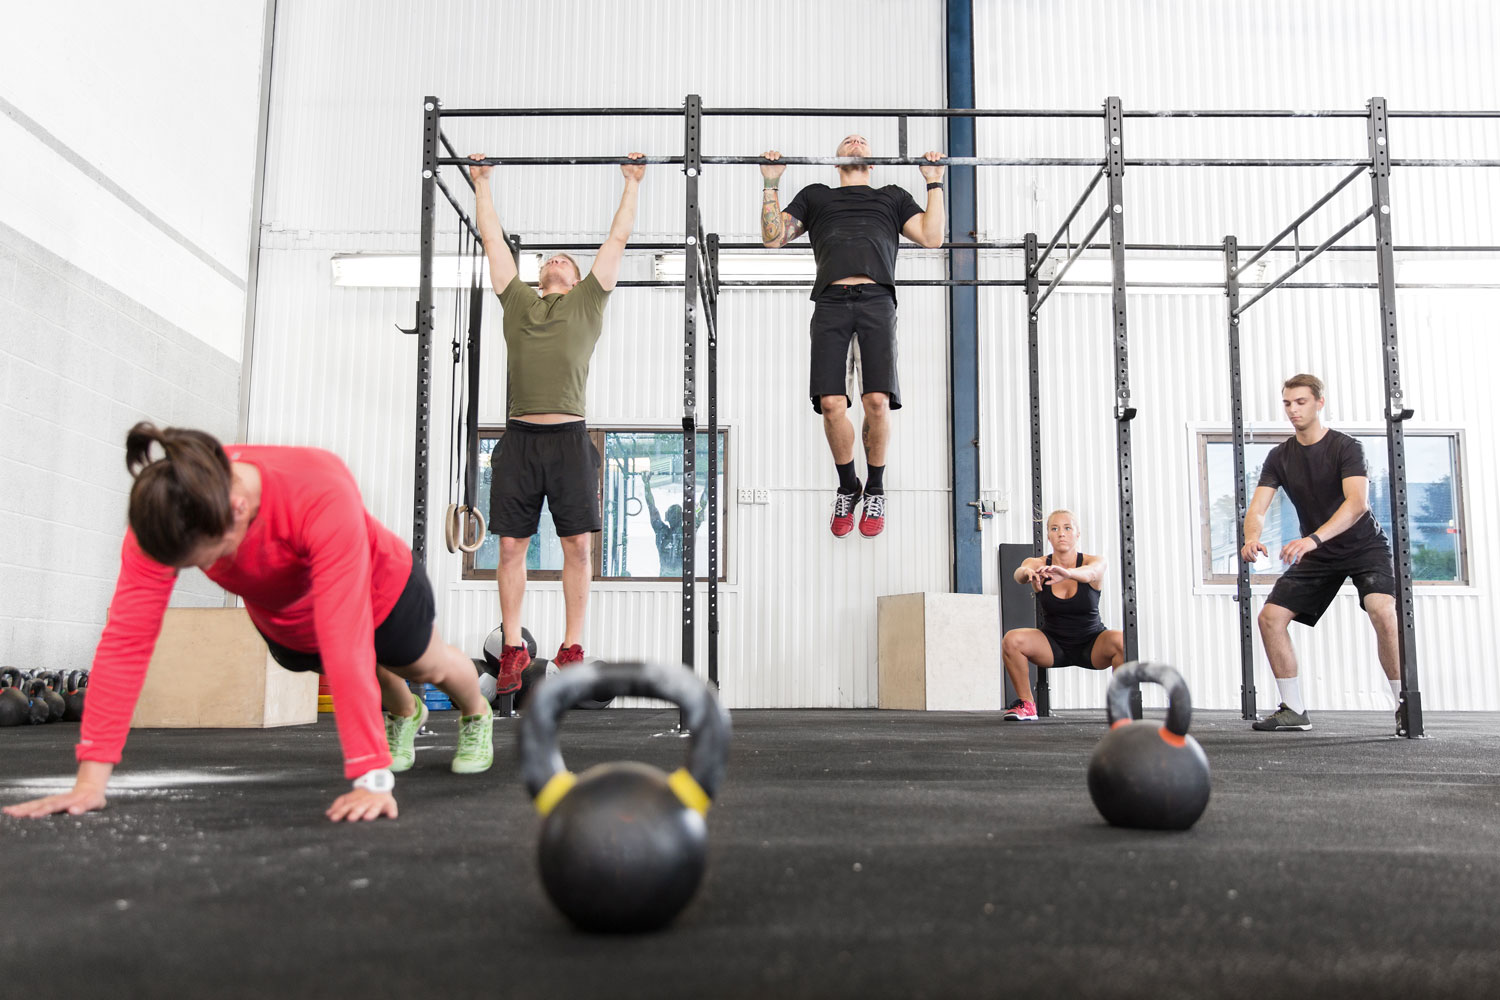 training-for-an-athletic-event-guys.jpg